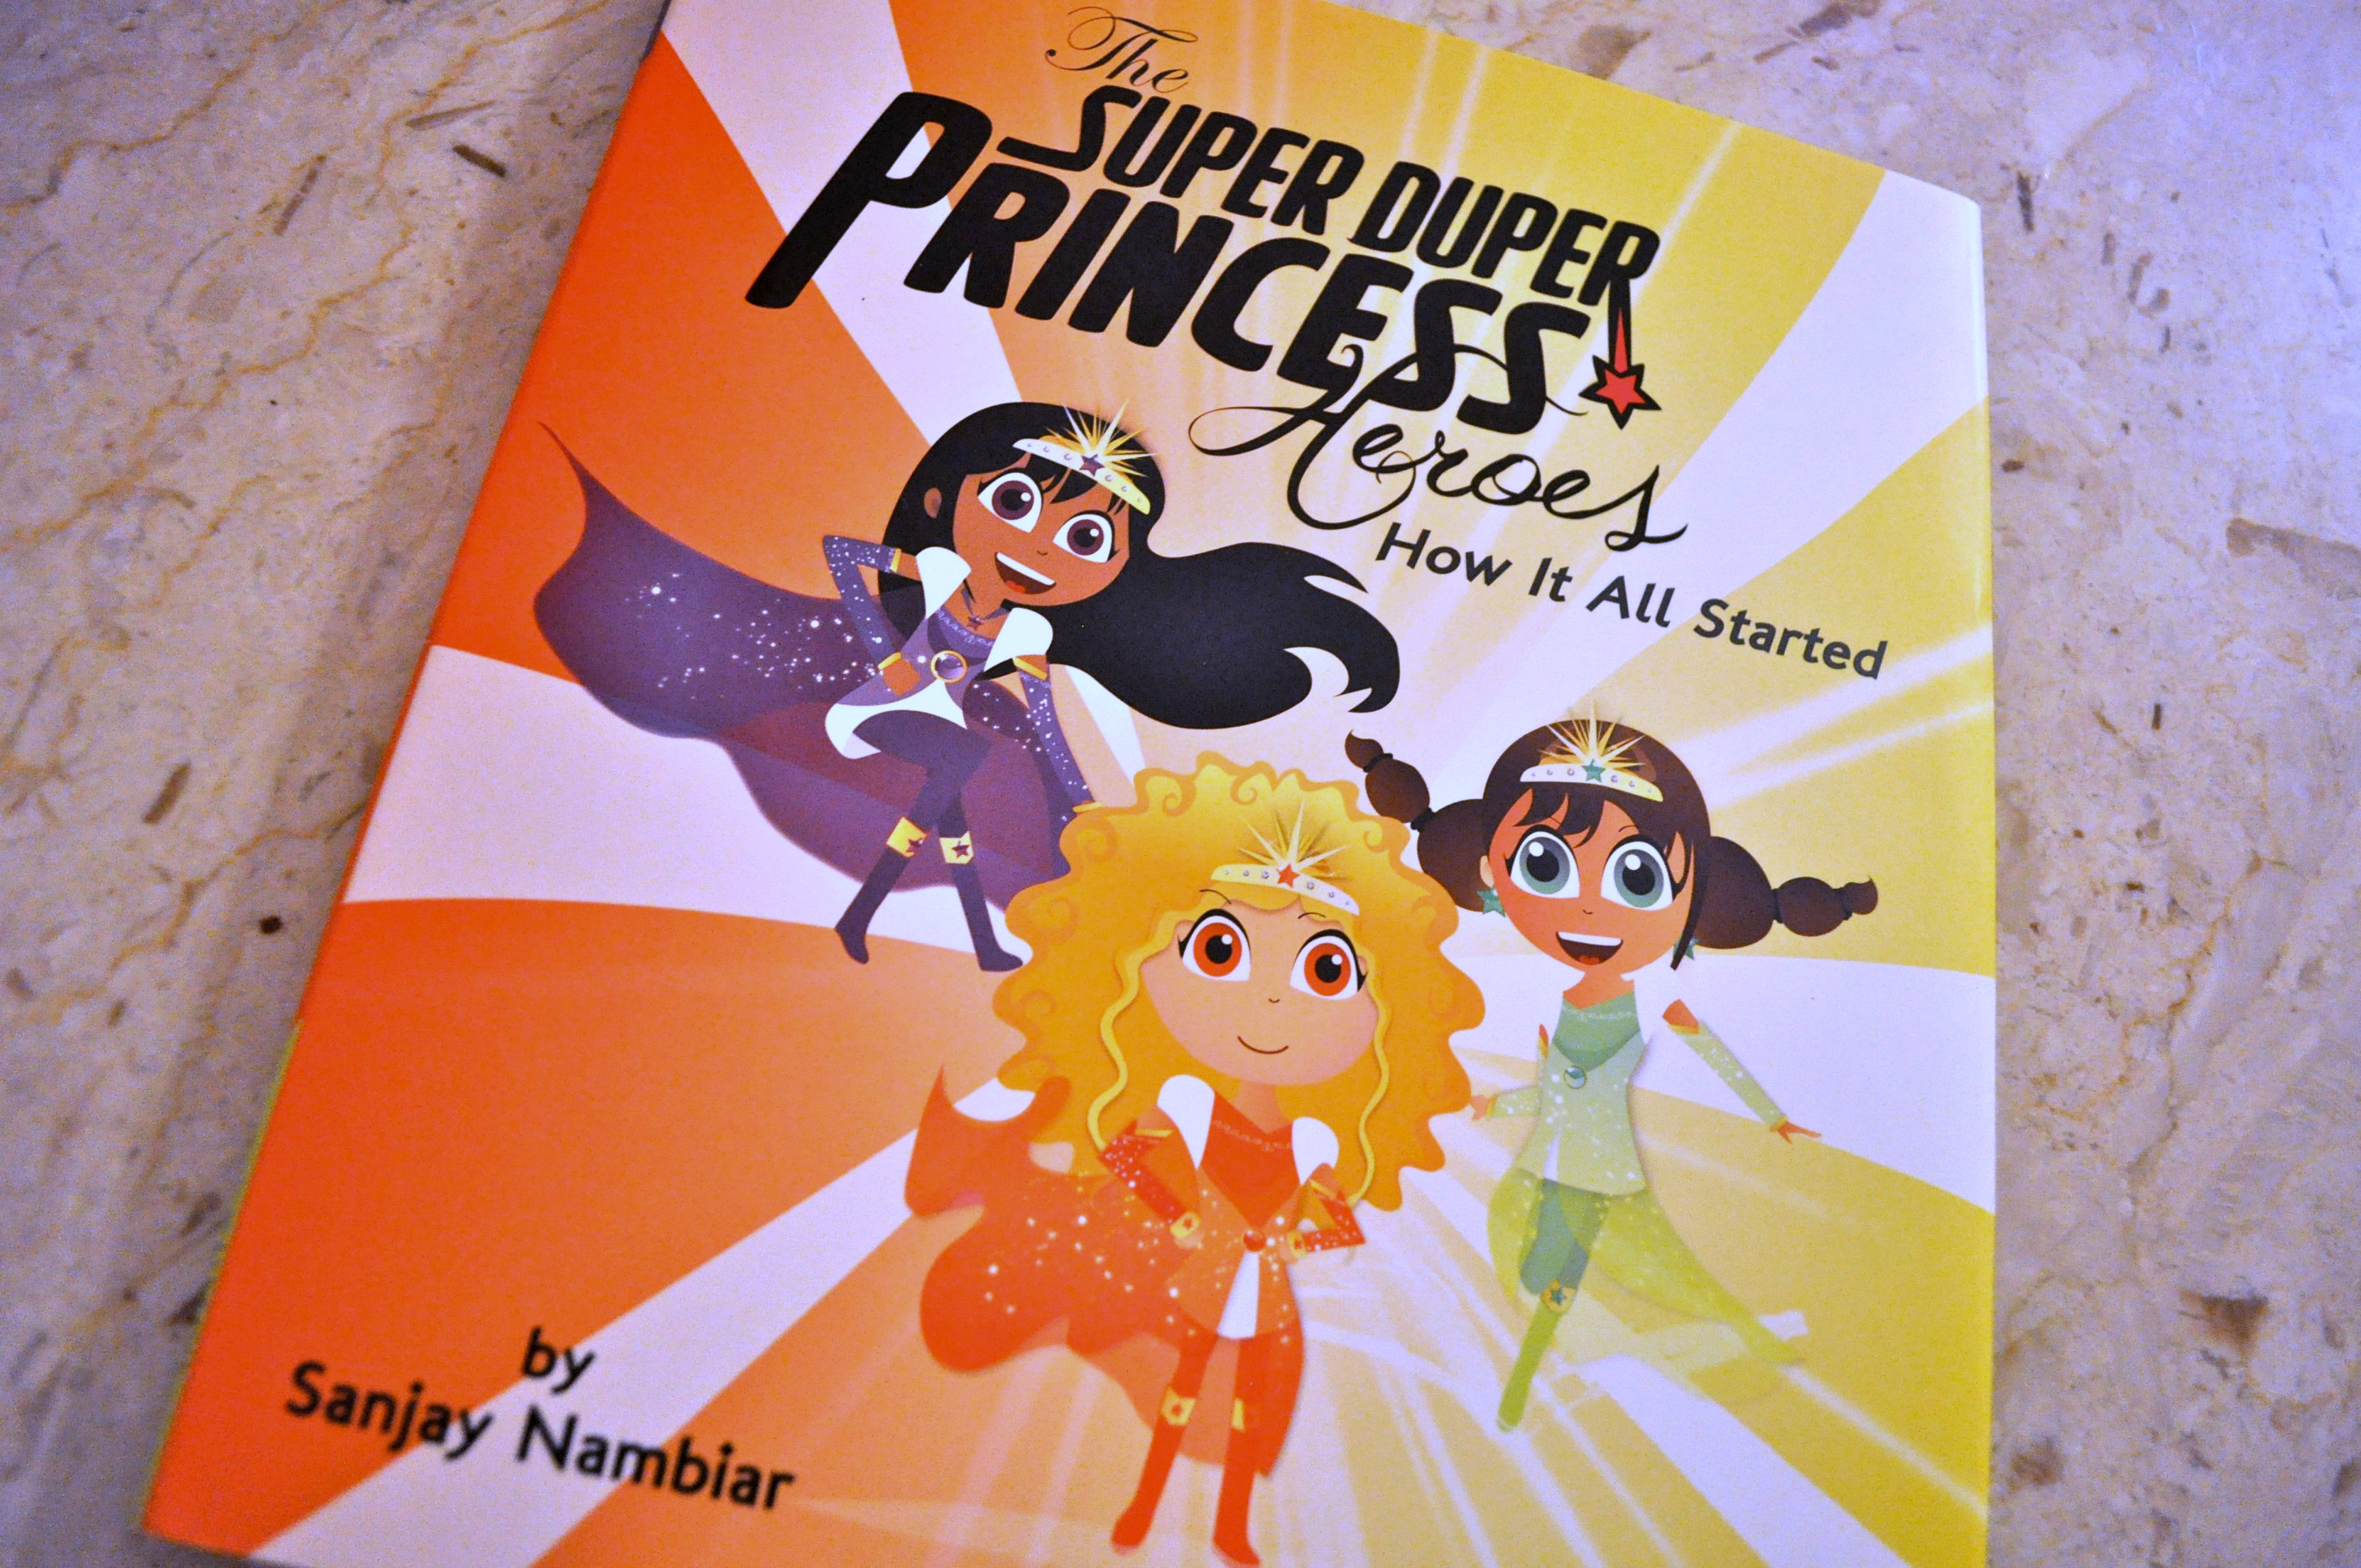 The Super Duper Princess Heroes – Children's Book